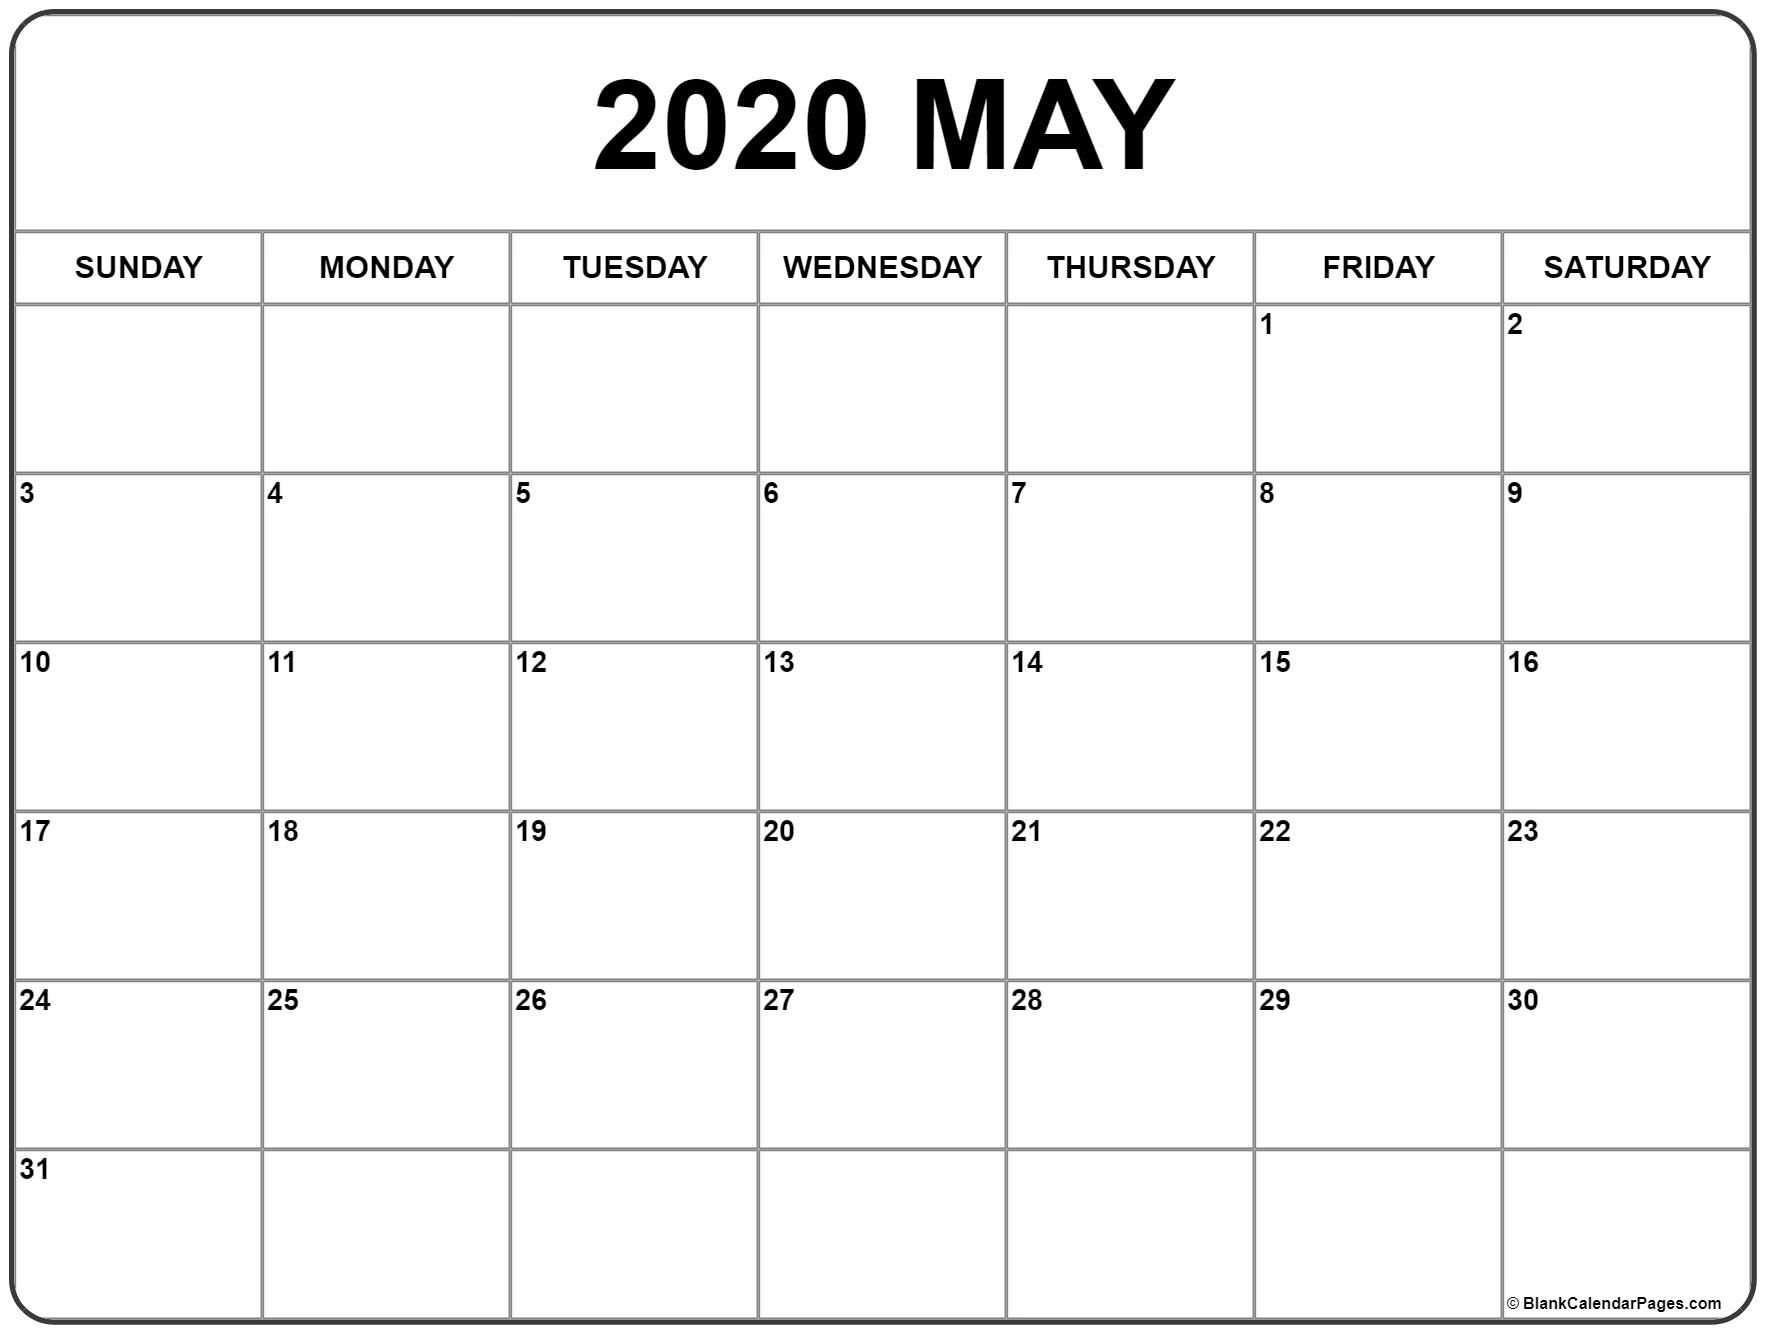 007 Impressive Monthly Calendar Template 2020 Image  Editable Free Word Excel MayFull